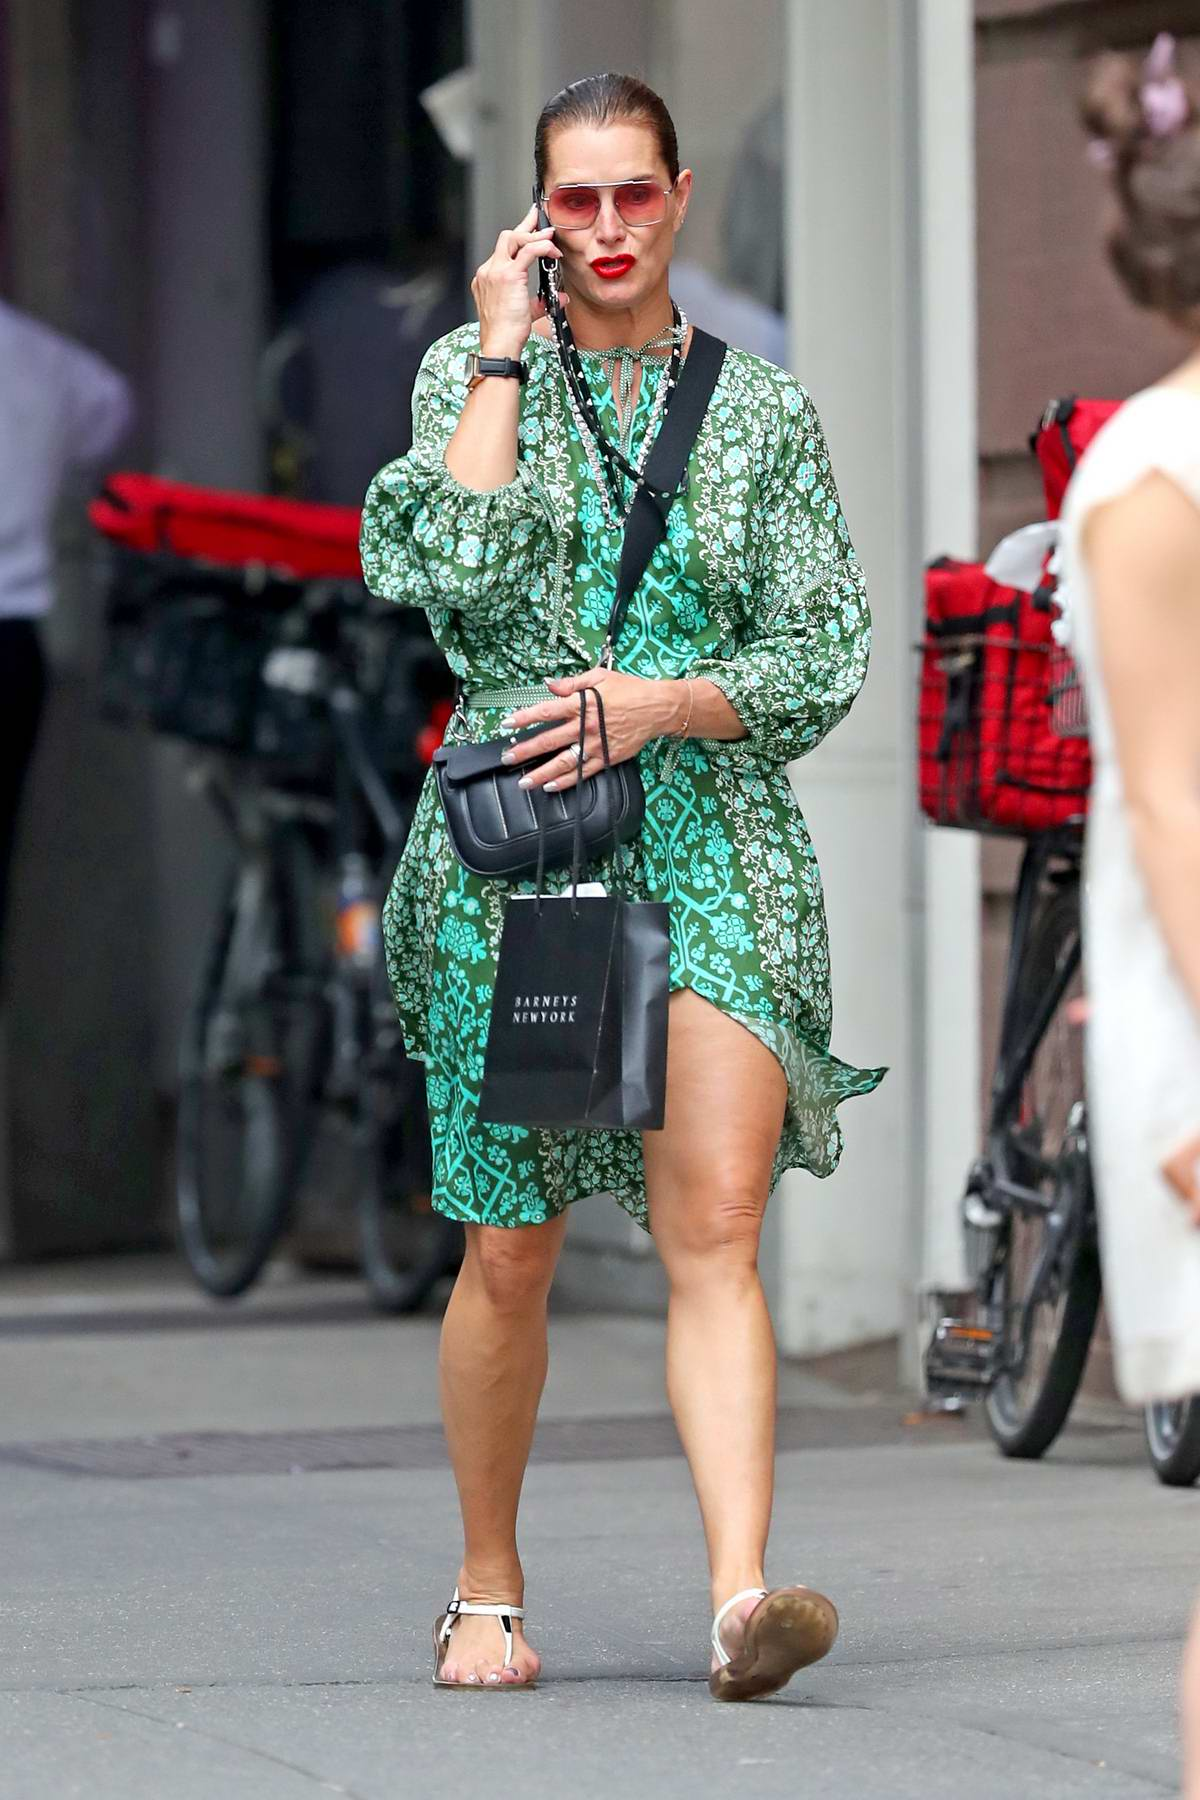 Brooke Shields steps out for some retail therapy in New York City